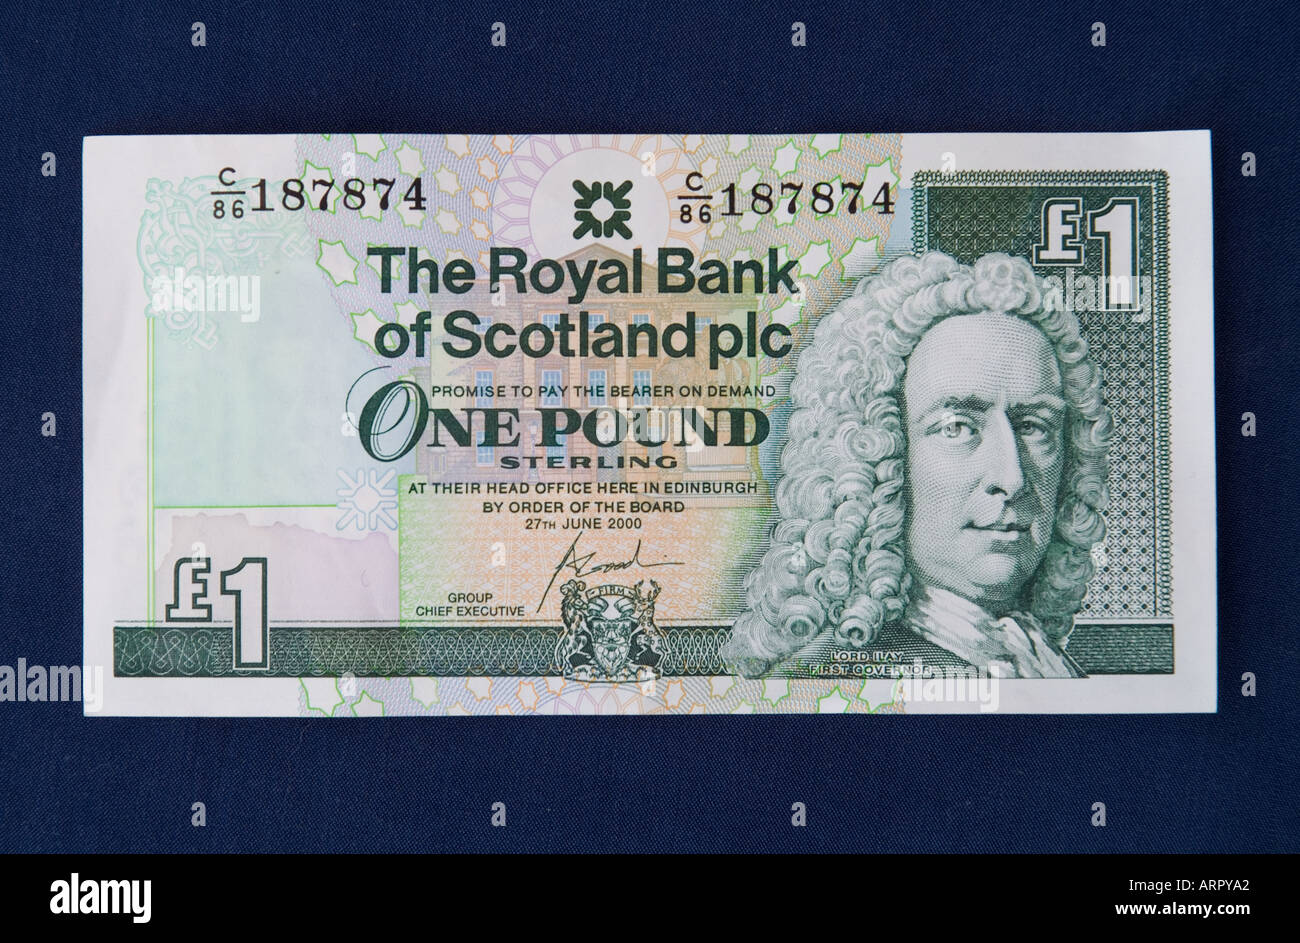 Dh Scottish money MONEY SCOTLAND Royal Bank of Scotland una